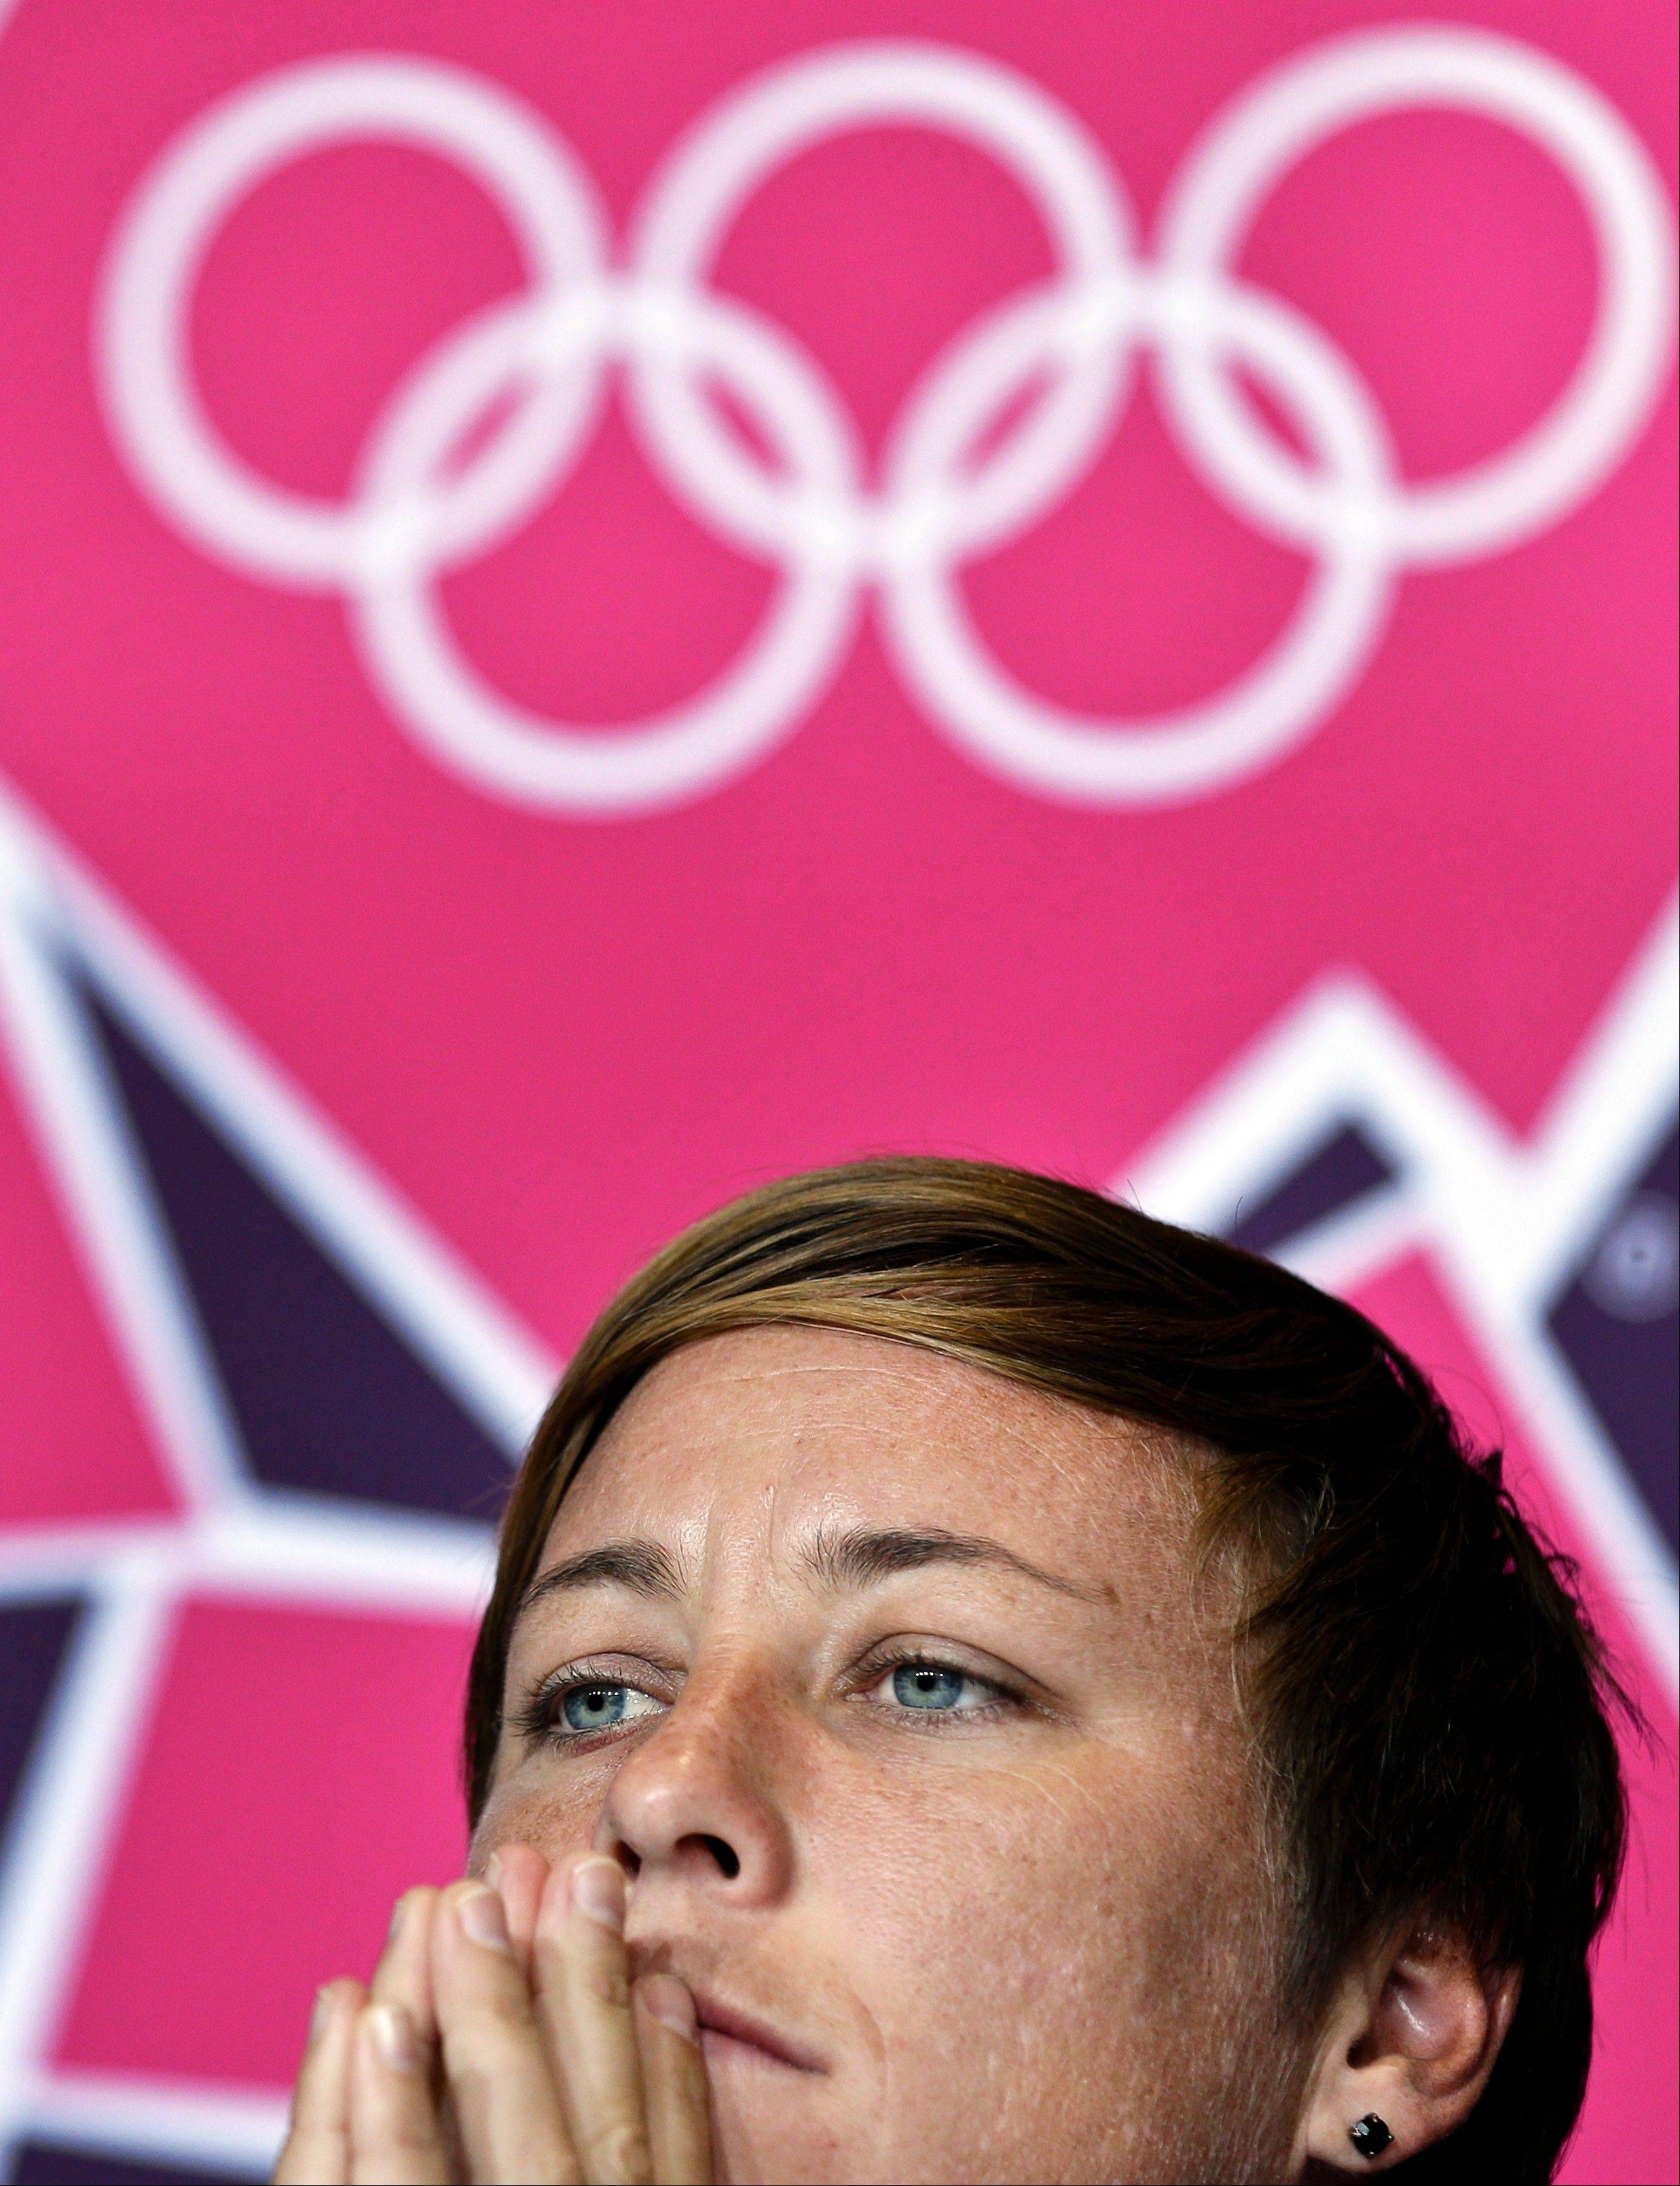 United States' Abby Wambach listens to a reporter's question during a women's soccer news conference for the 2012 Summer Olympics, Sunday, Aug. 5, 2012, at Old Trafford in Manchester, England.